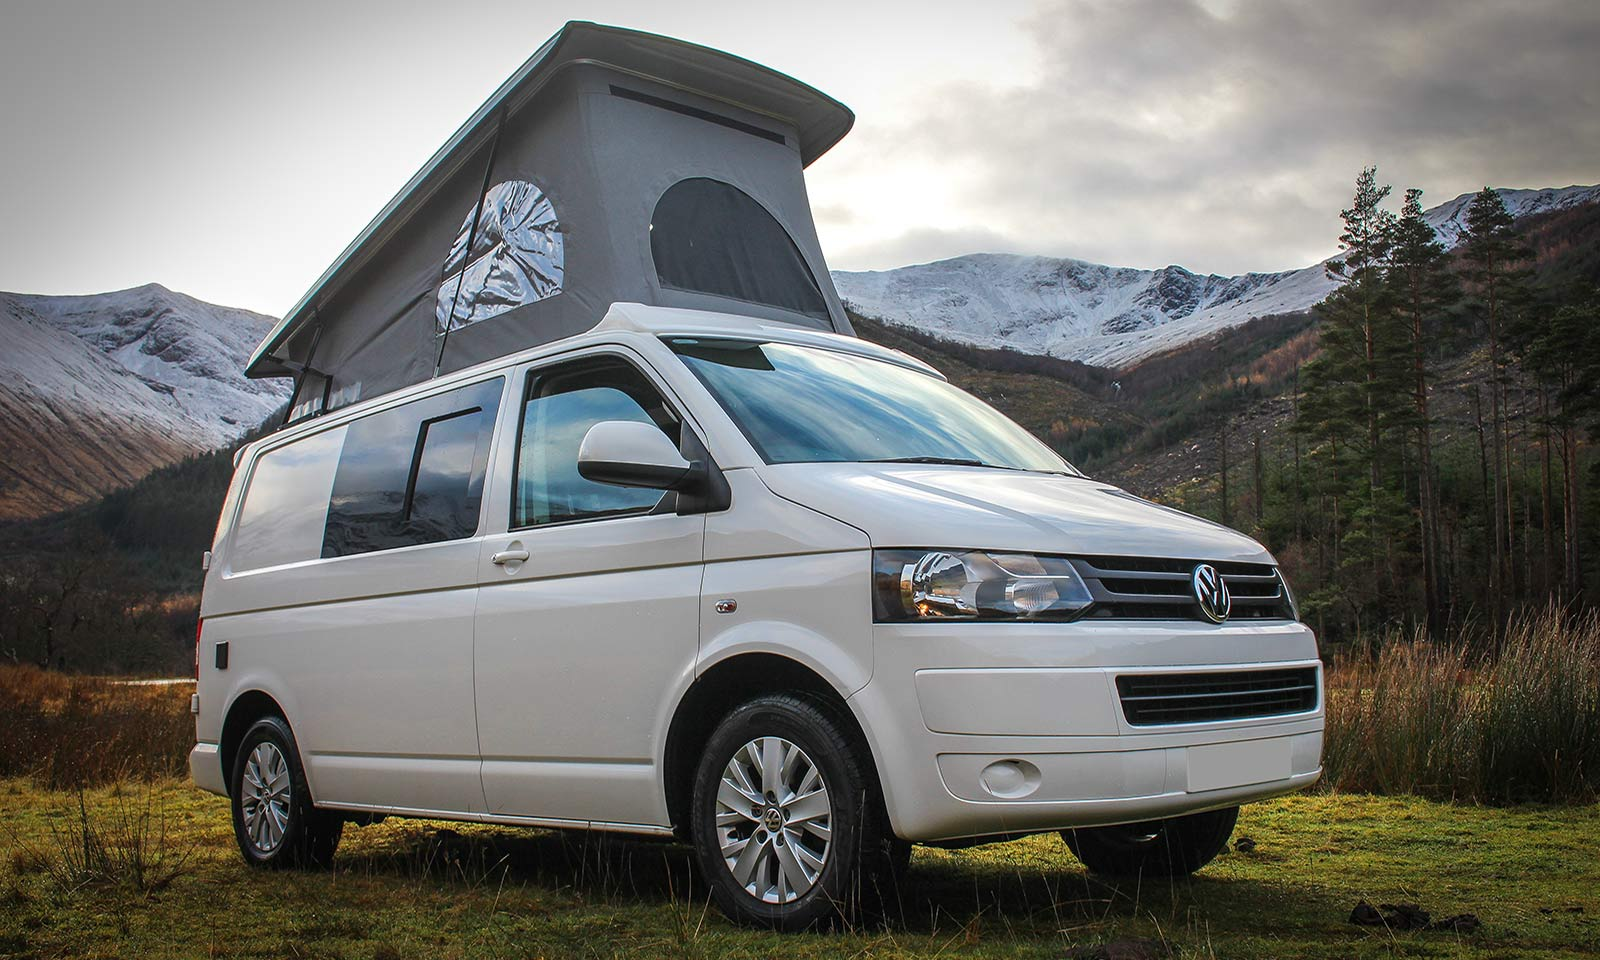 Camper Van Conversions Vans For Sale VanLife Campervan Guide Contact